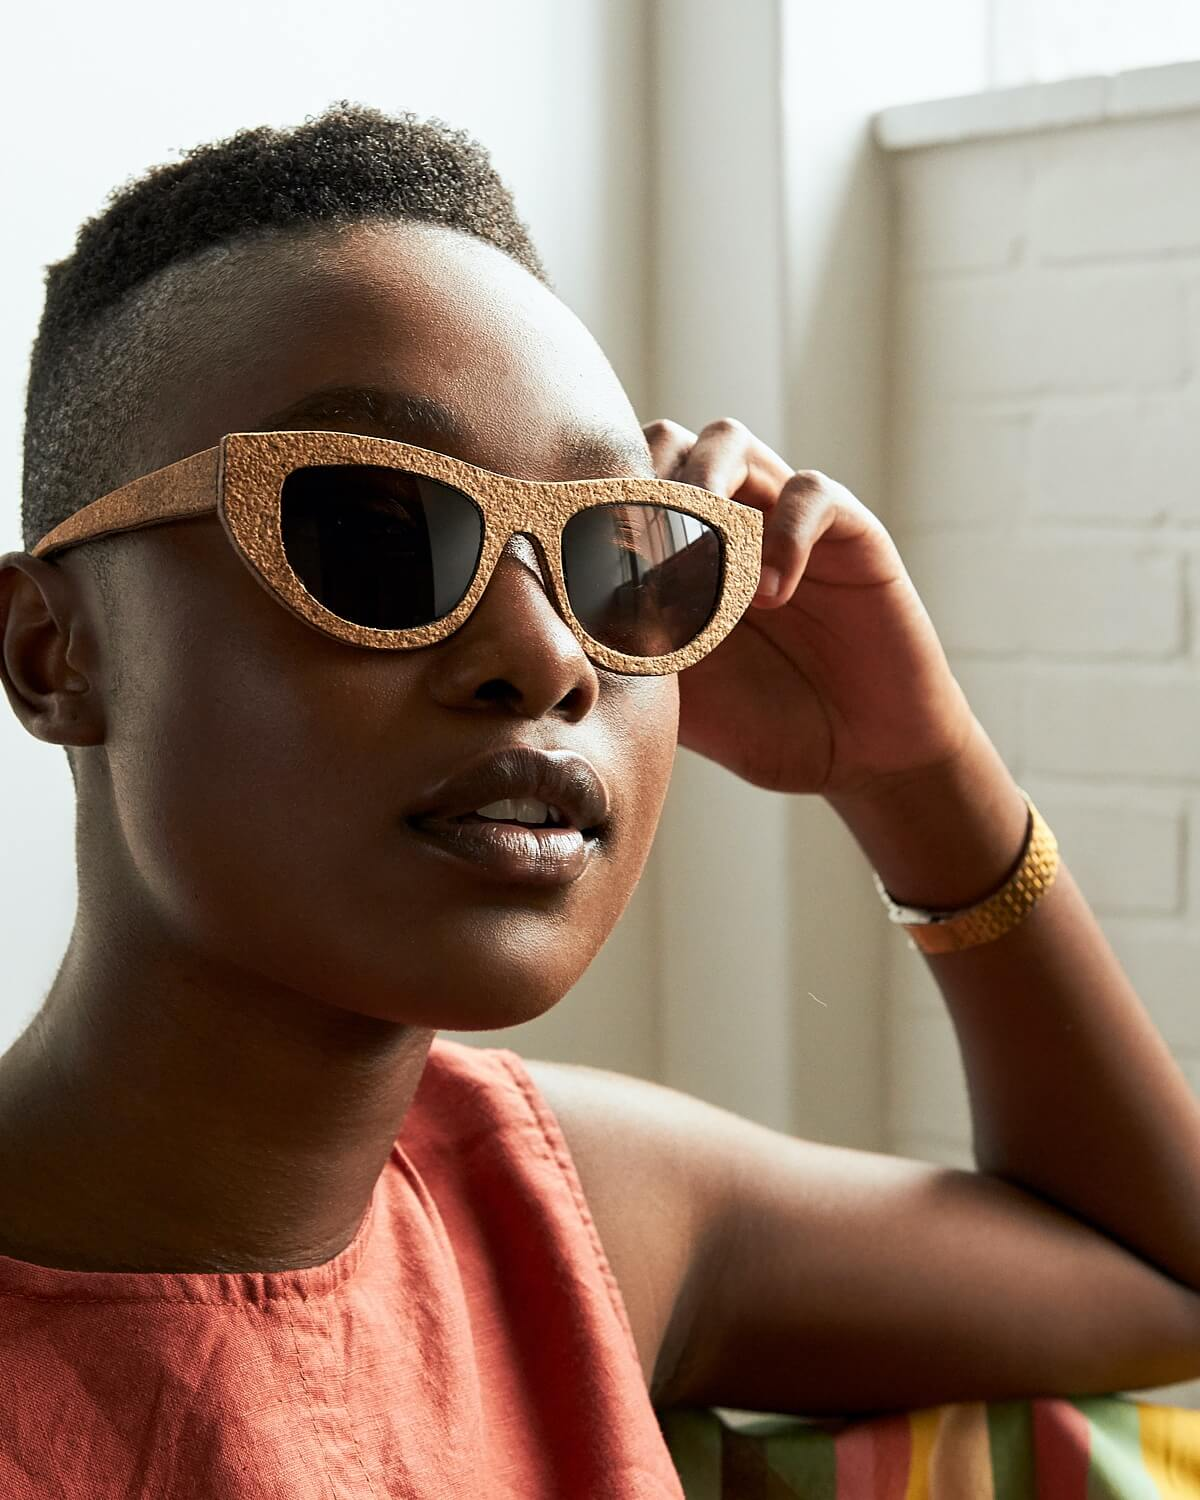 His & hers Ballo sunglasses voucher (valued at R3 000)